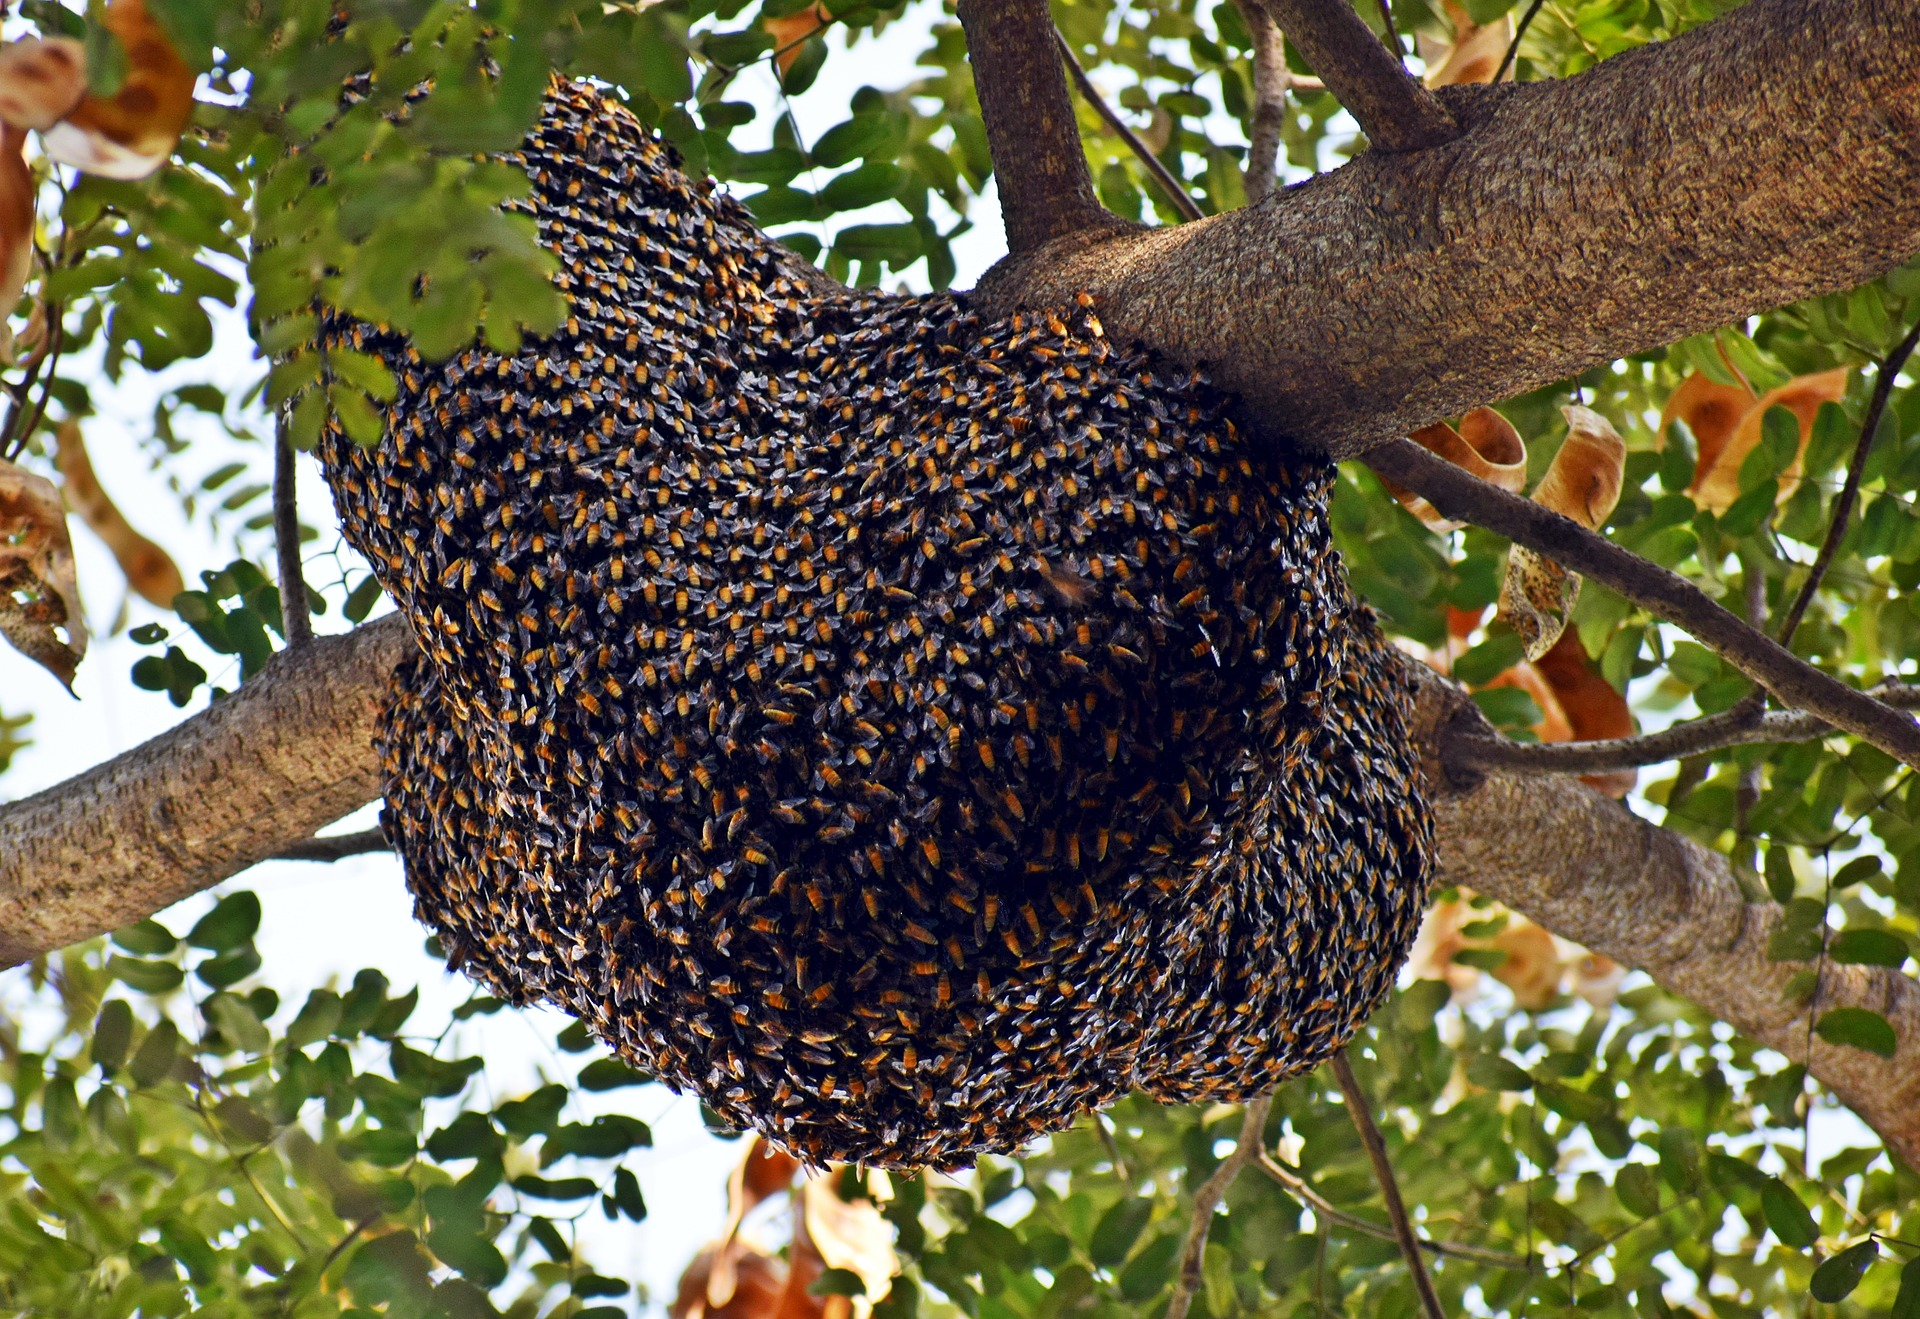 May 2021 - Adopt-A-Hive Update - Honey Bee Swarms